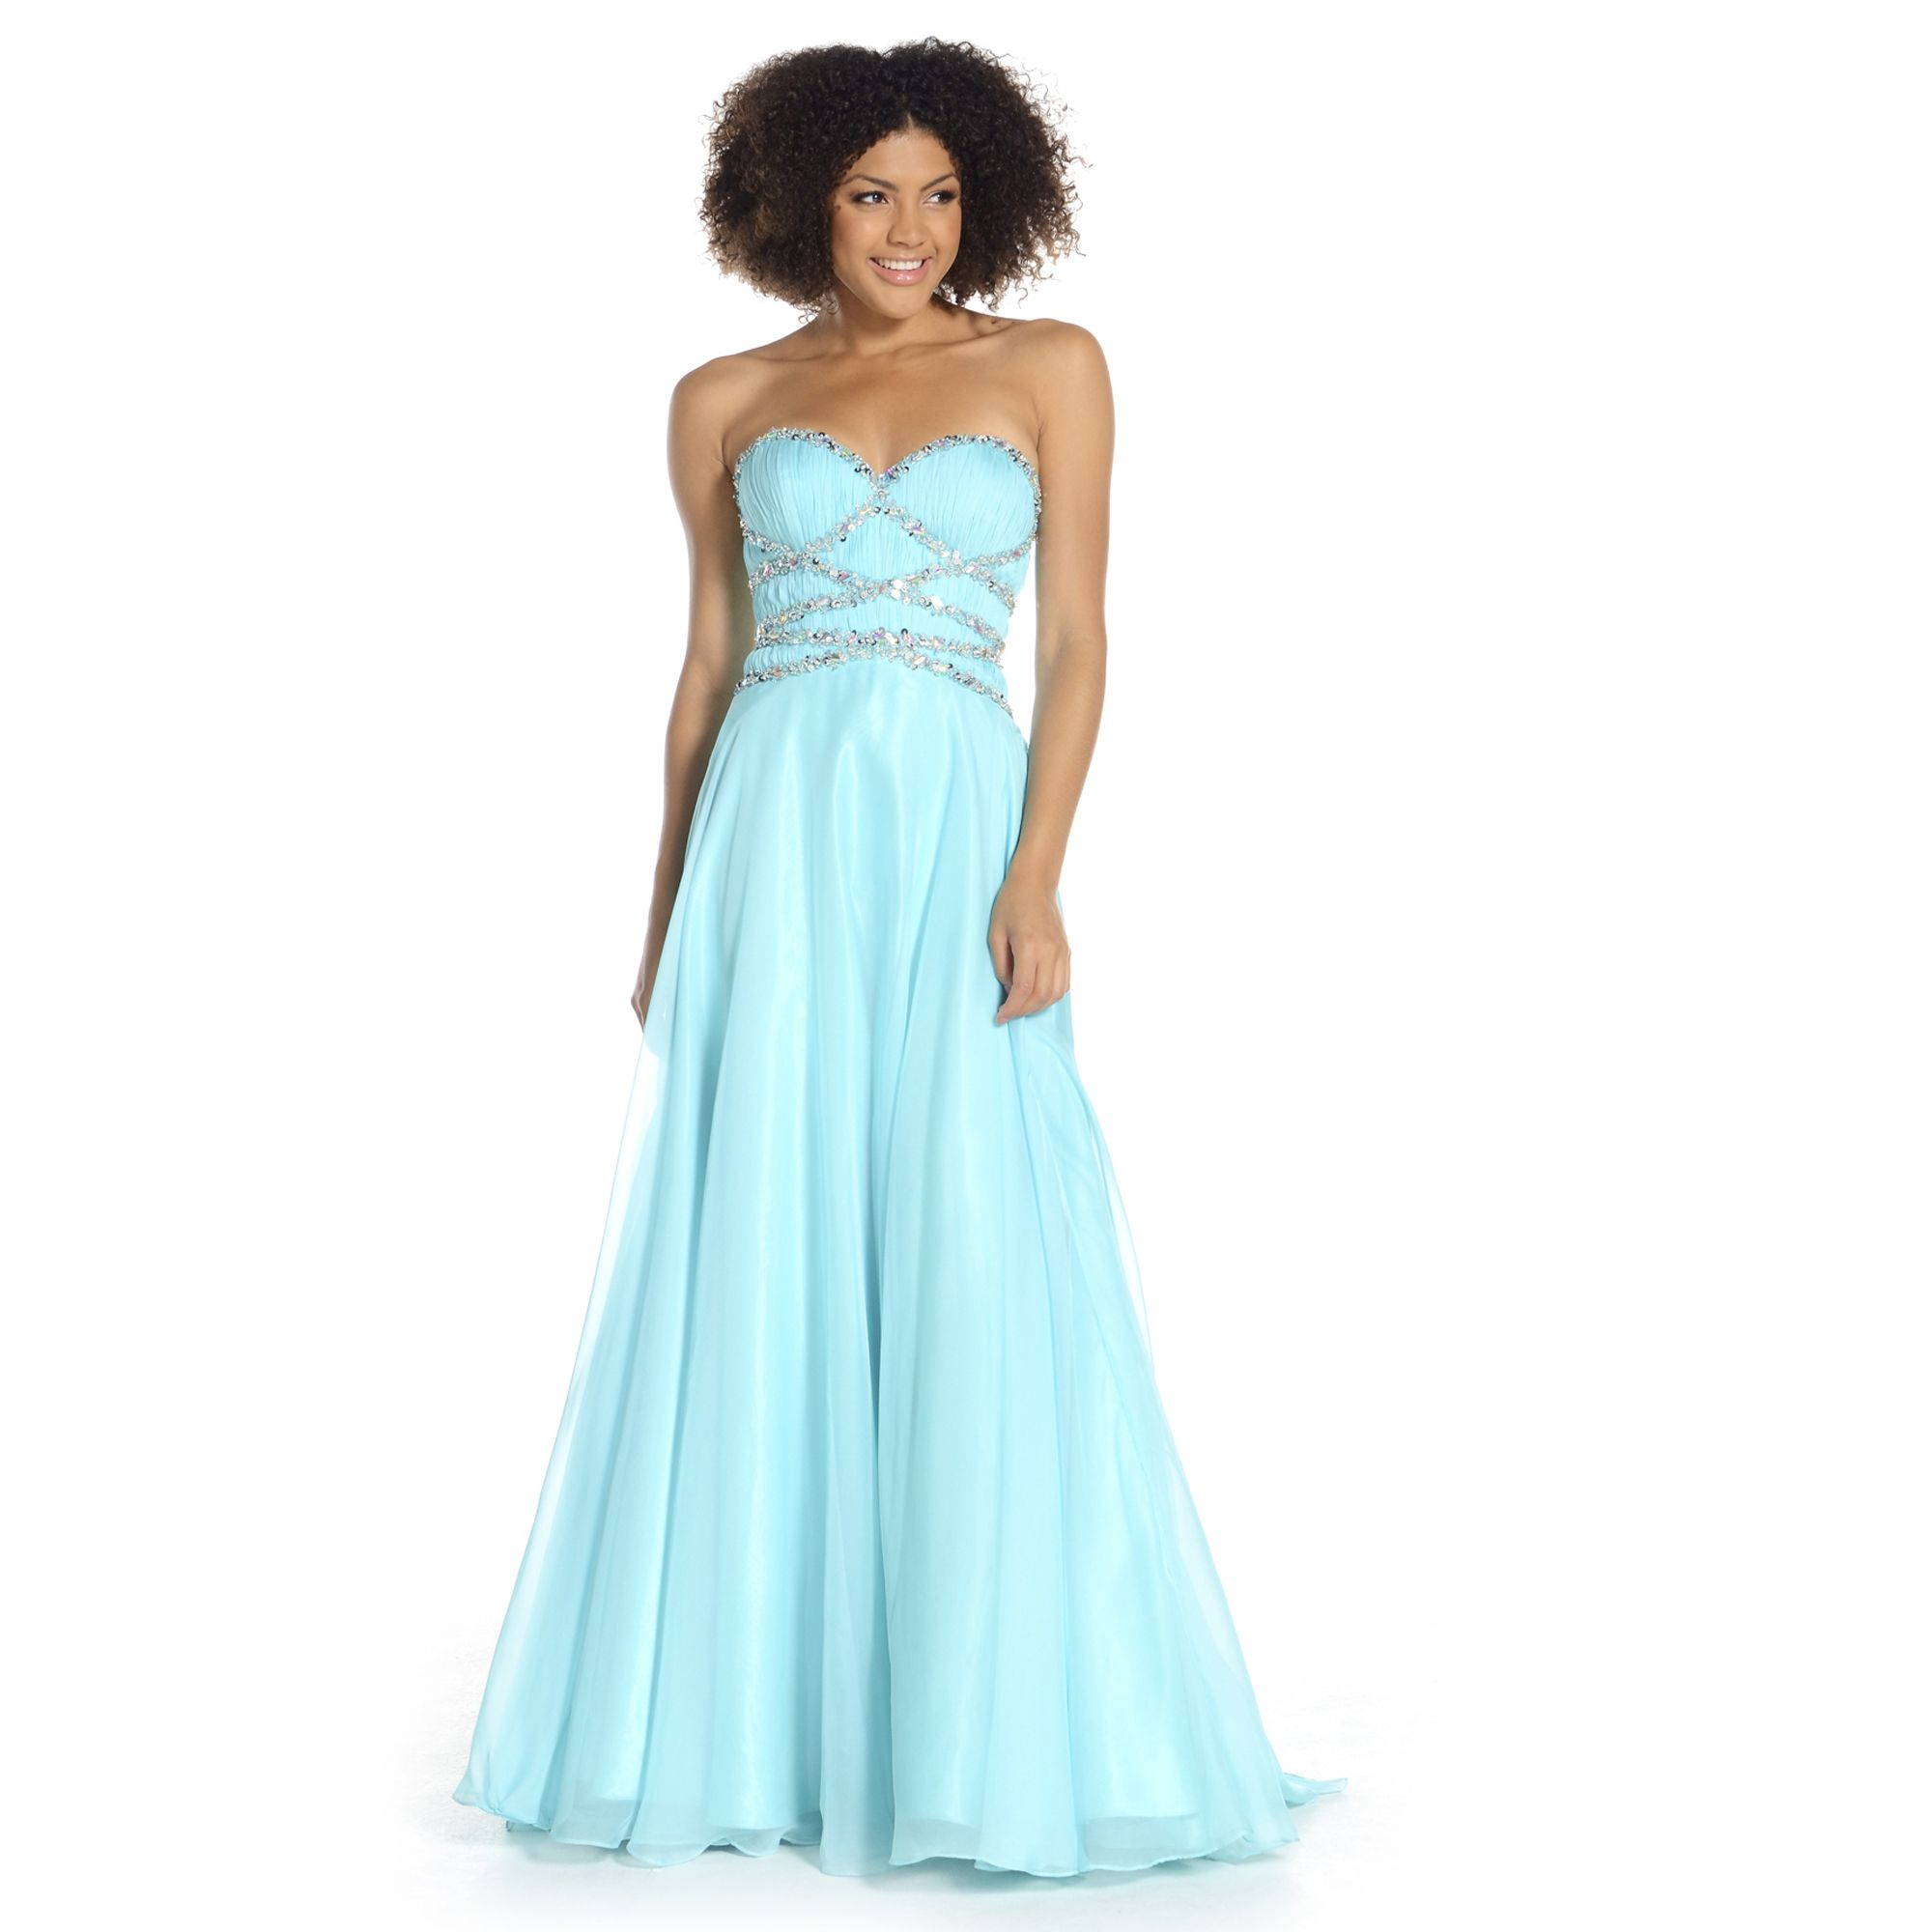 An elegant backless long prom dress with diamante detailed bodice ...